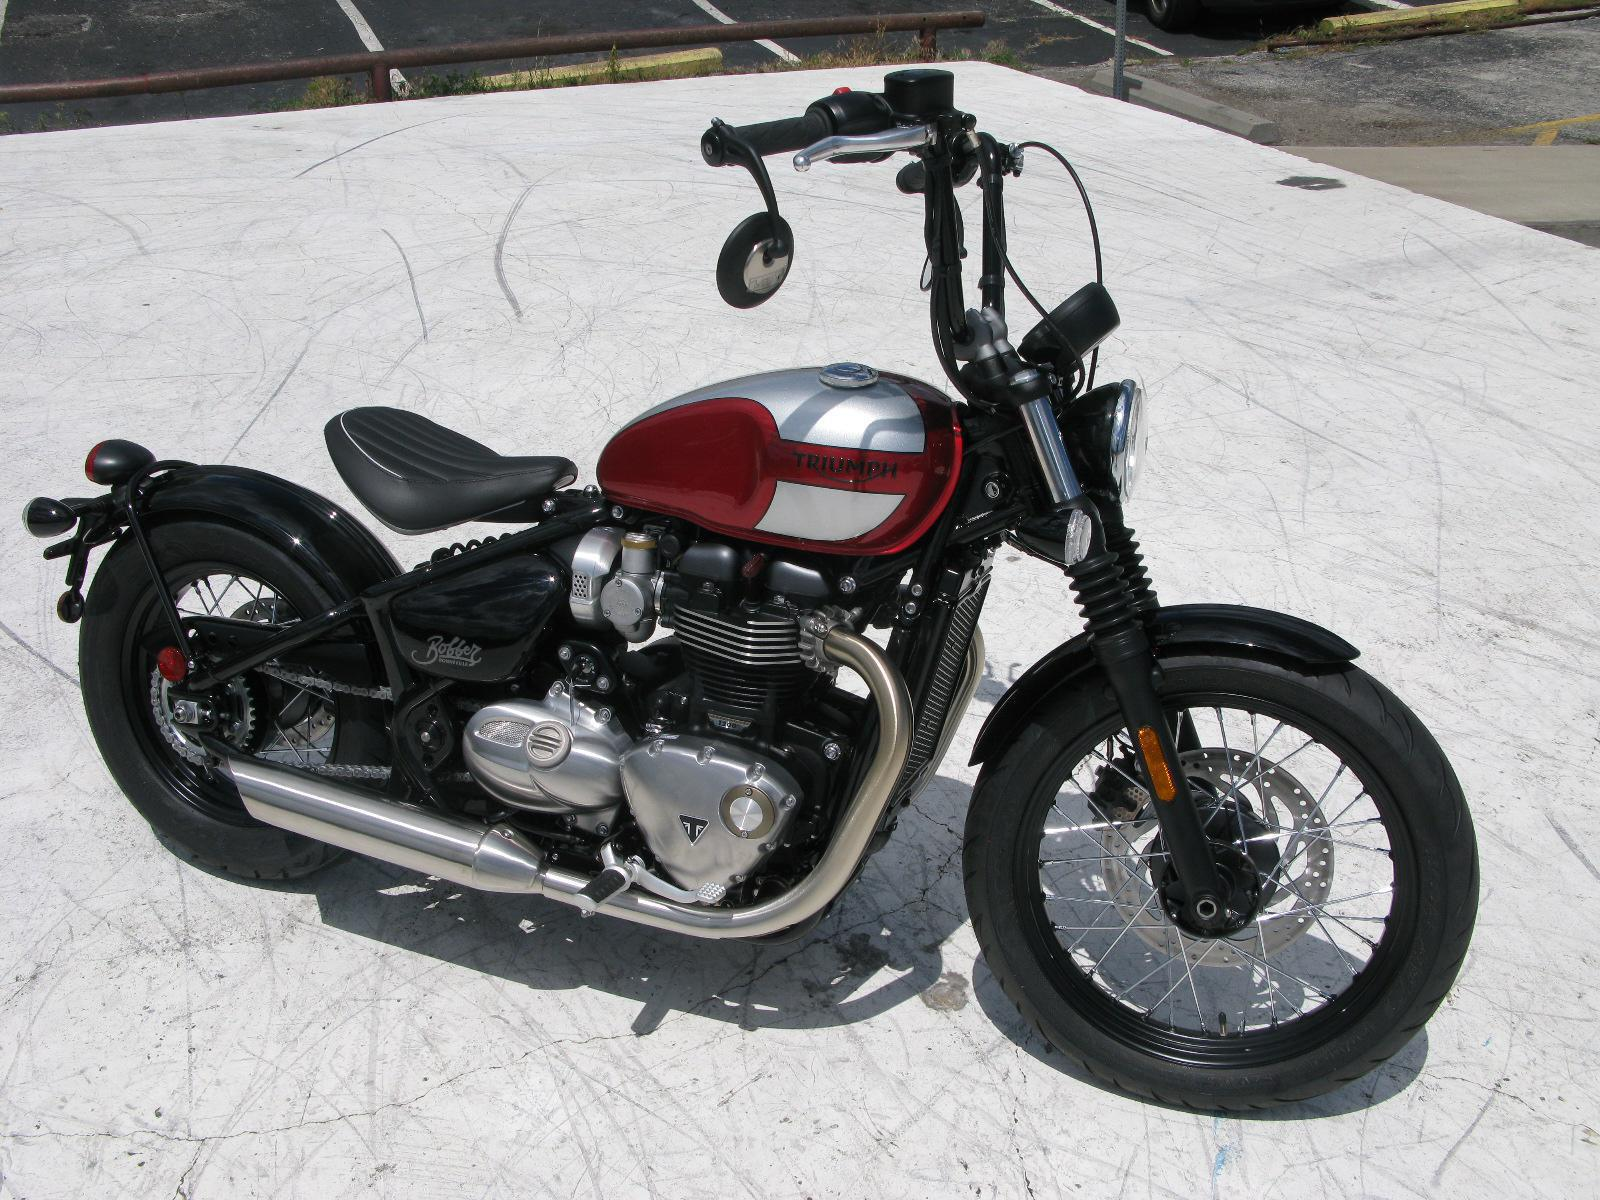 2018 triumph bobber for sale in kansas city, mo. engle motors